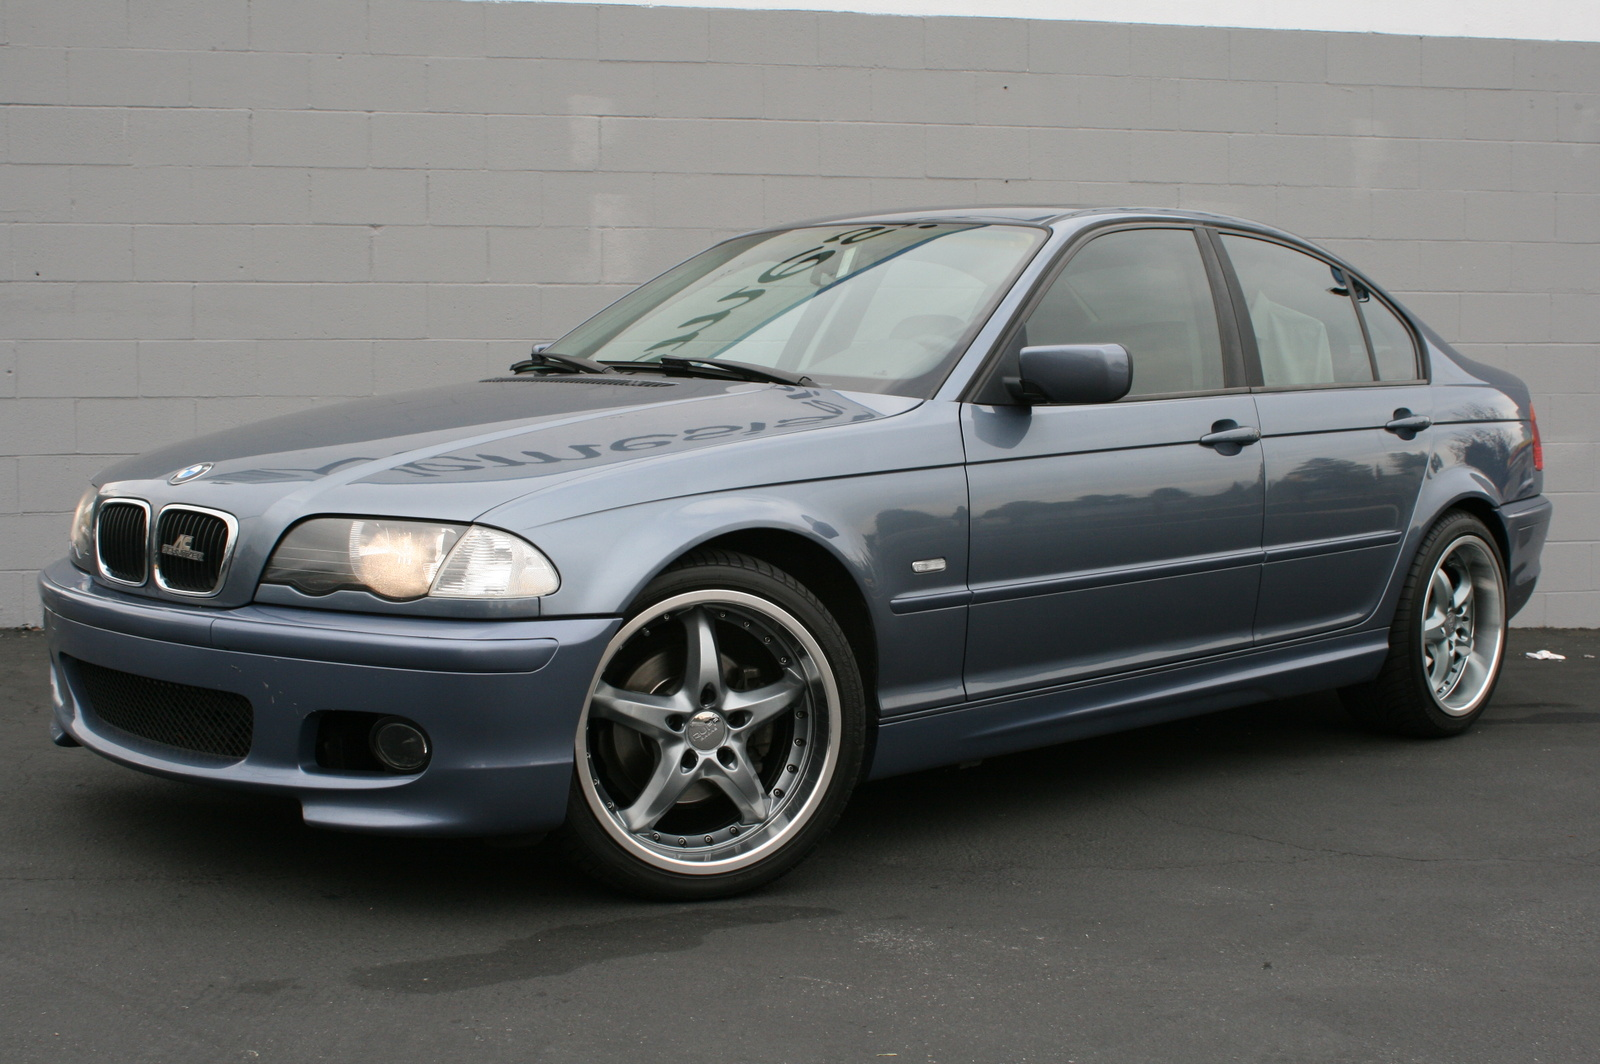 2001 BMW 3 Series - Pictures - CarGurus